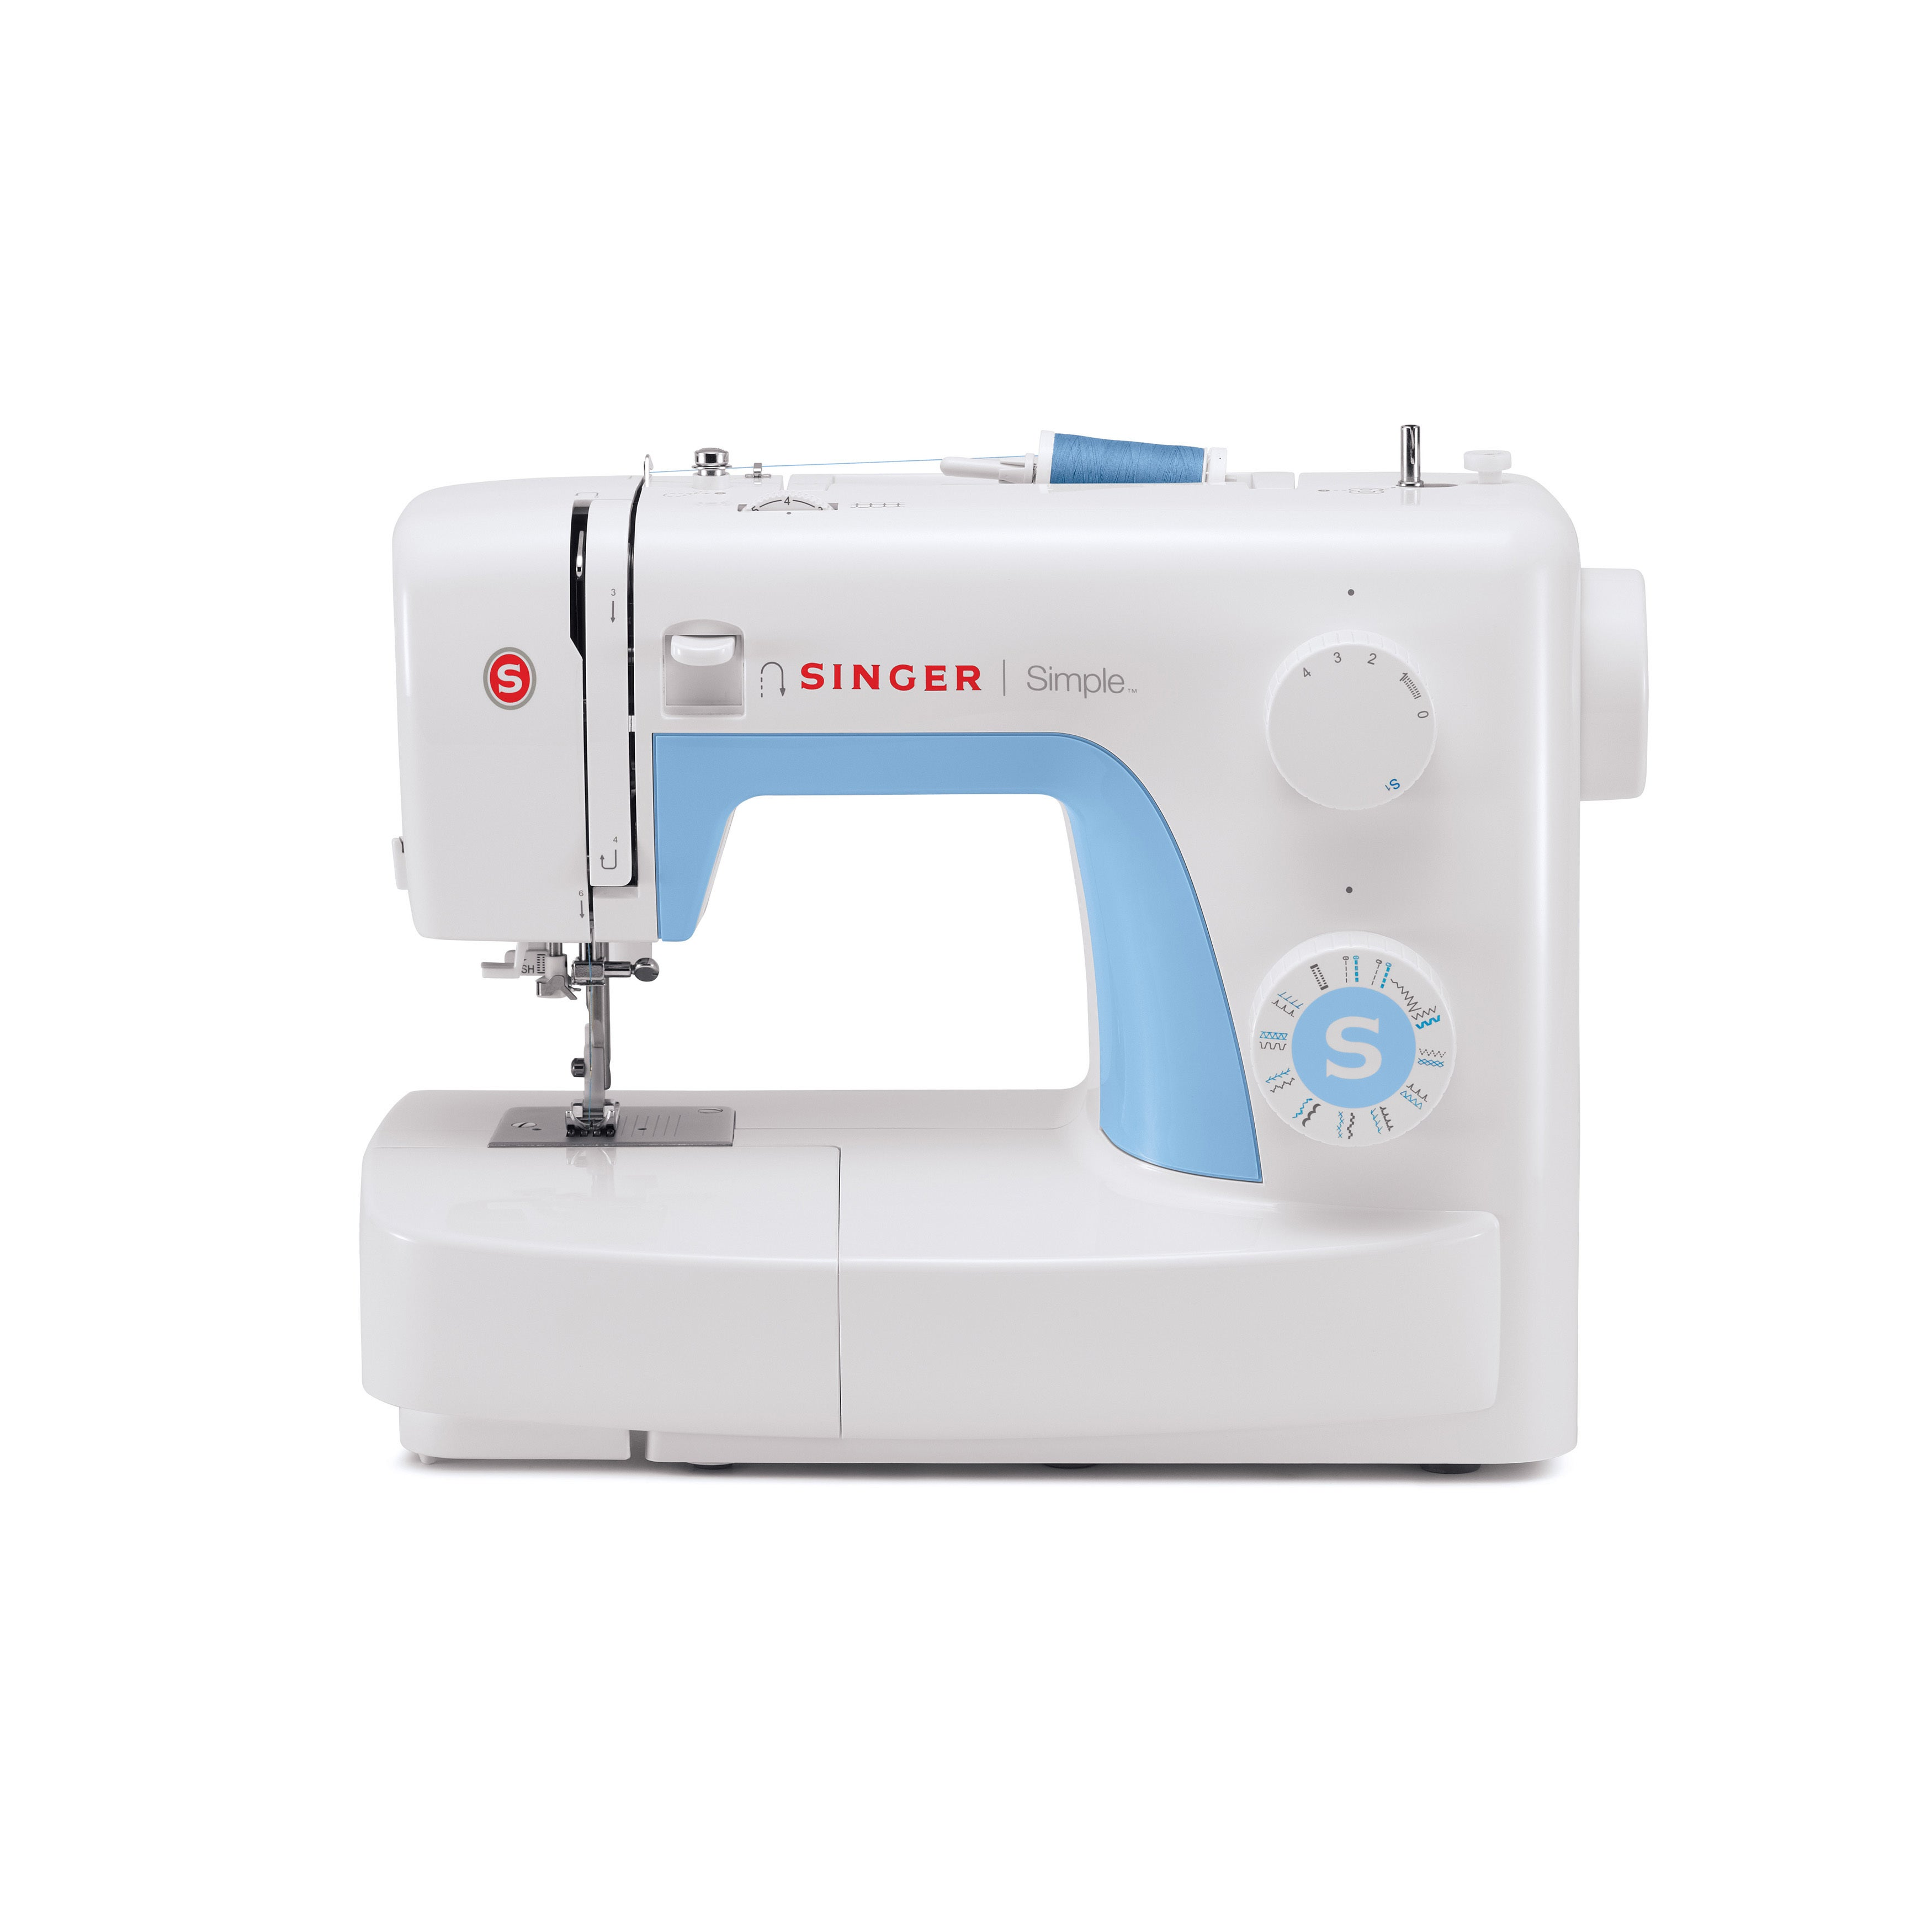 SINGER SEWING CO. 3221 Simple Sewing Machine, White (Plas...